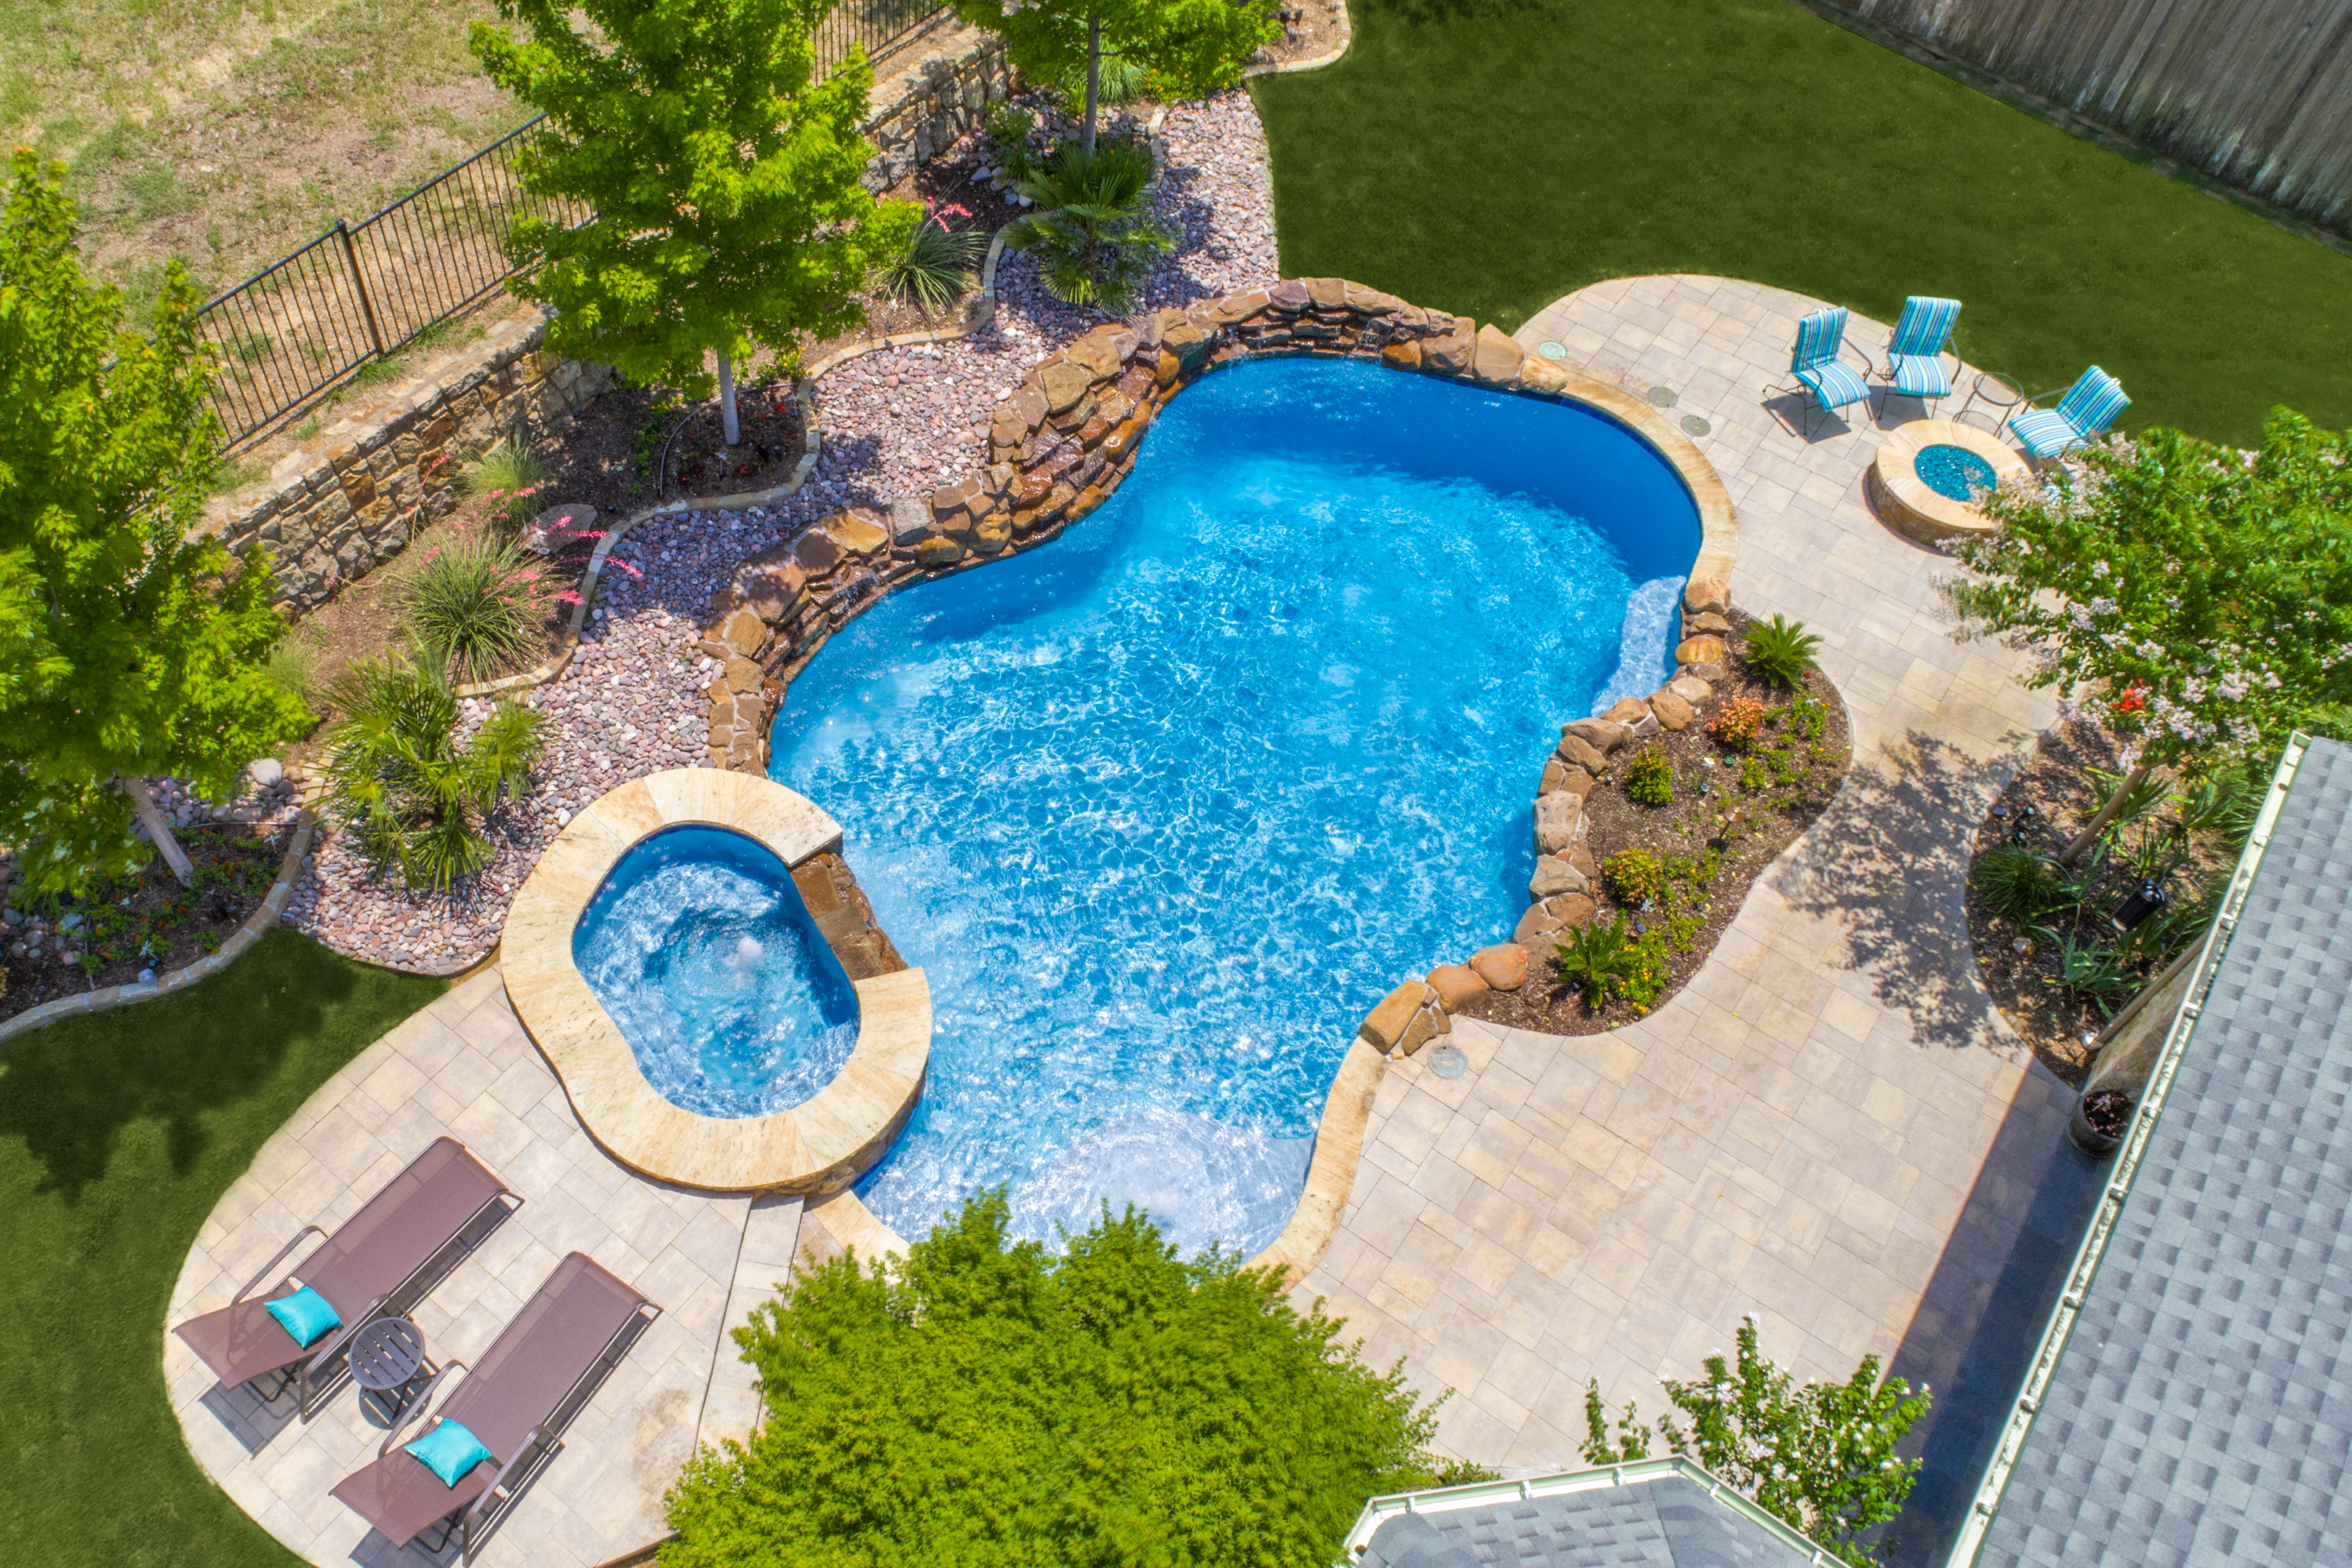 Gold_Medal_Pools-Residential_Pool_Free_Form_Style-Plano-TX-14